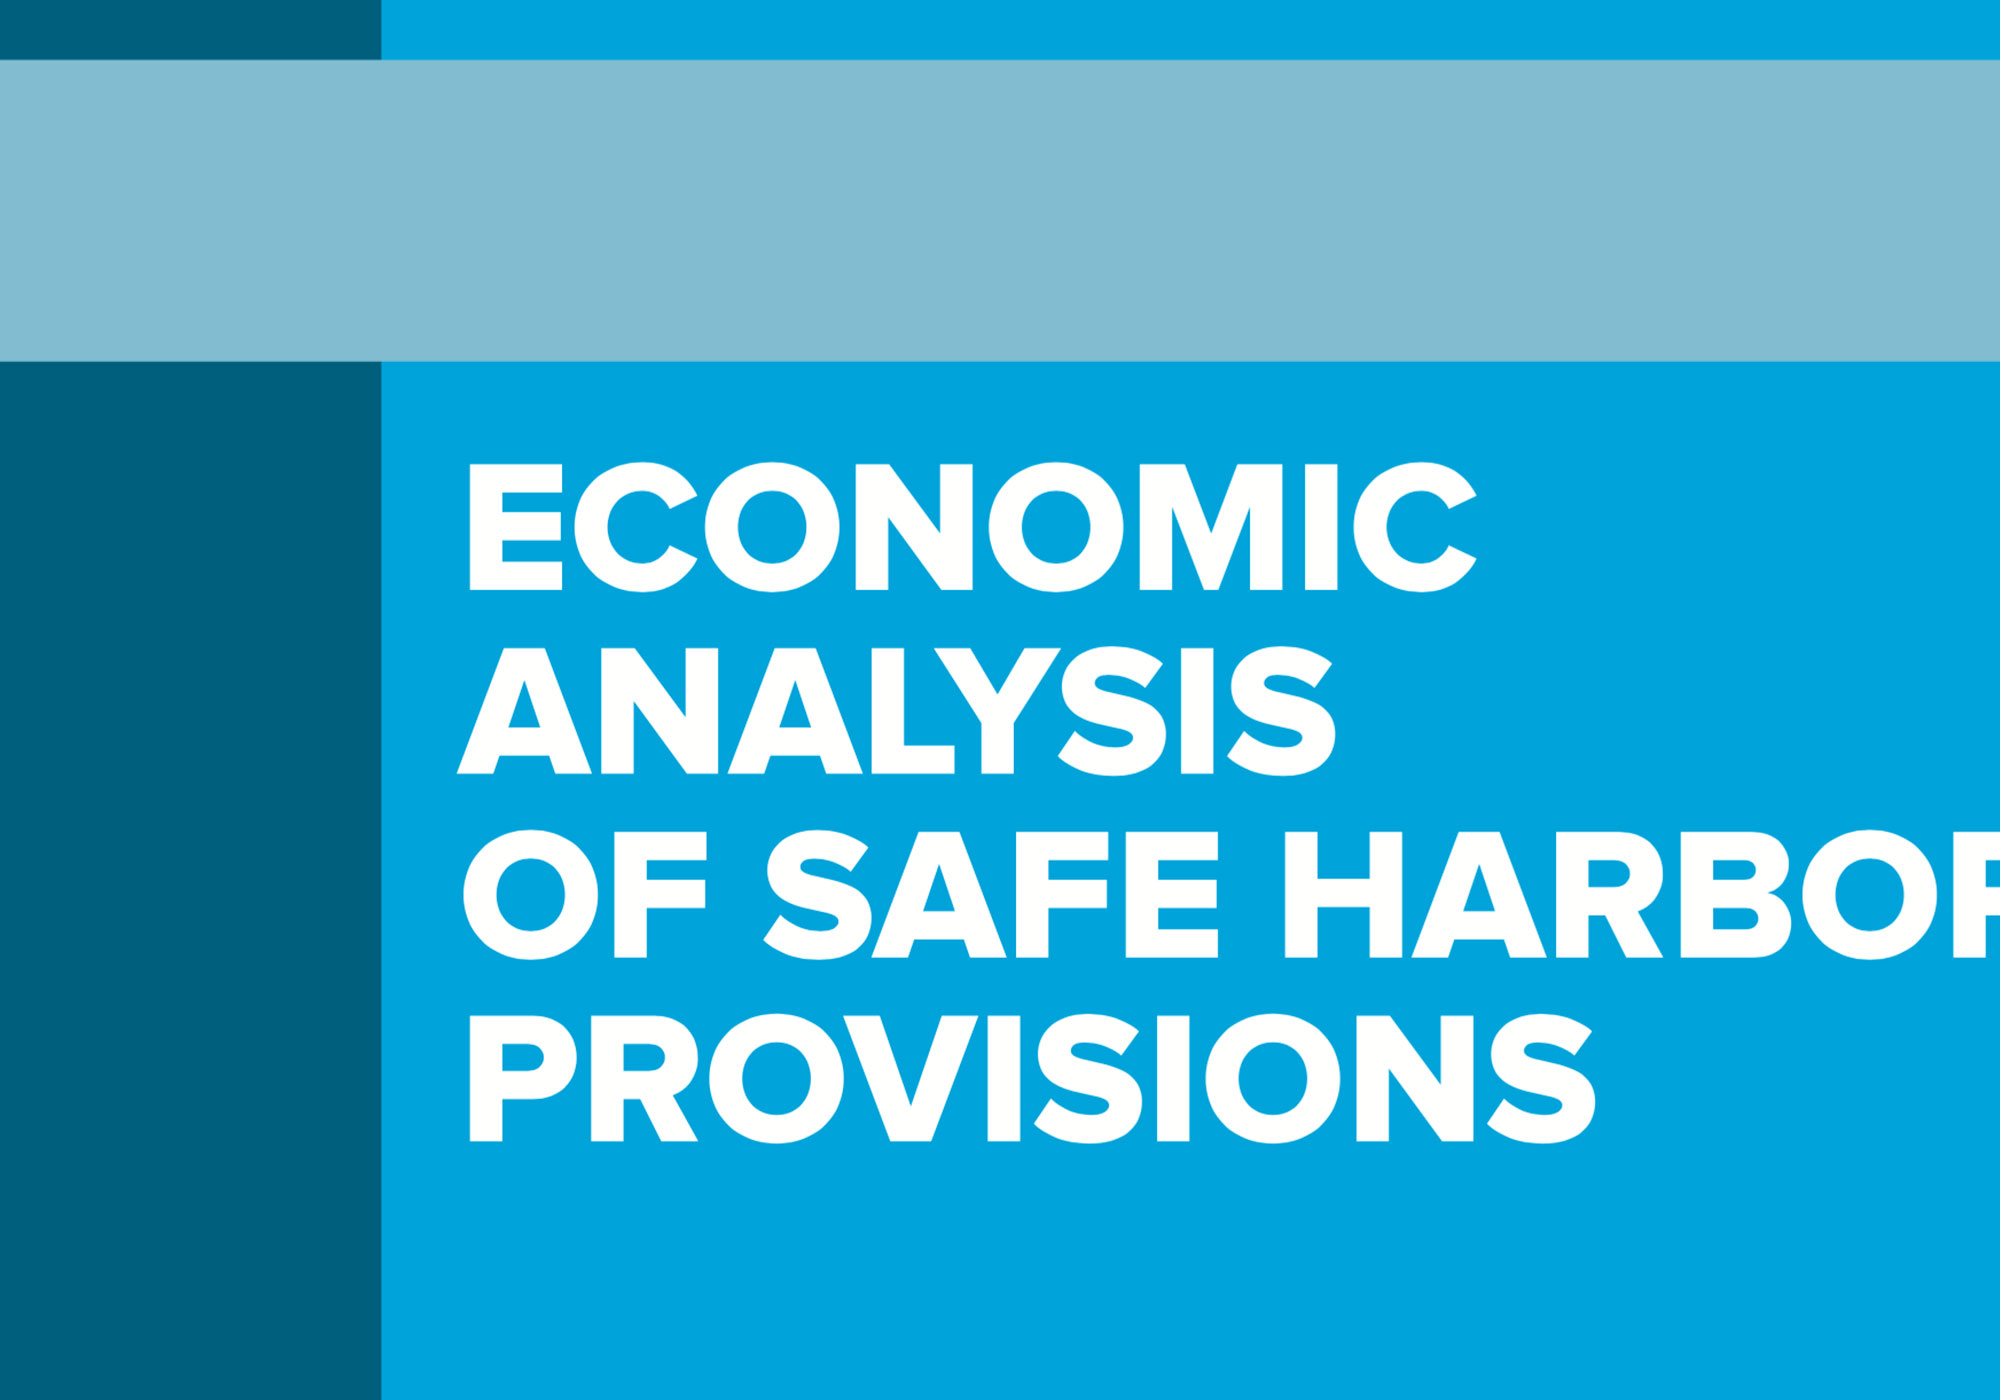 Fairness Rocks News ECONOMIC ANALYSIS OF SAFE HARBOR PROVISIONS